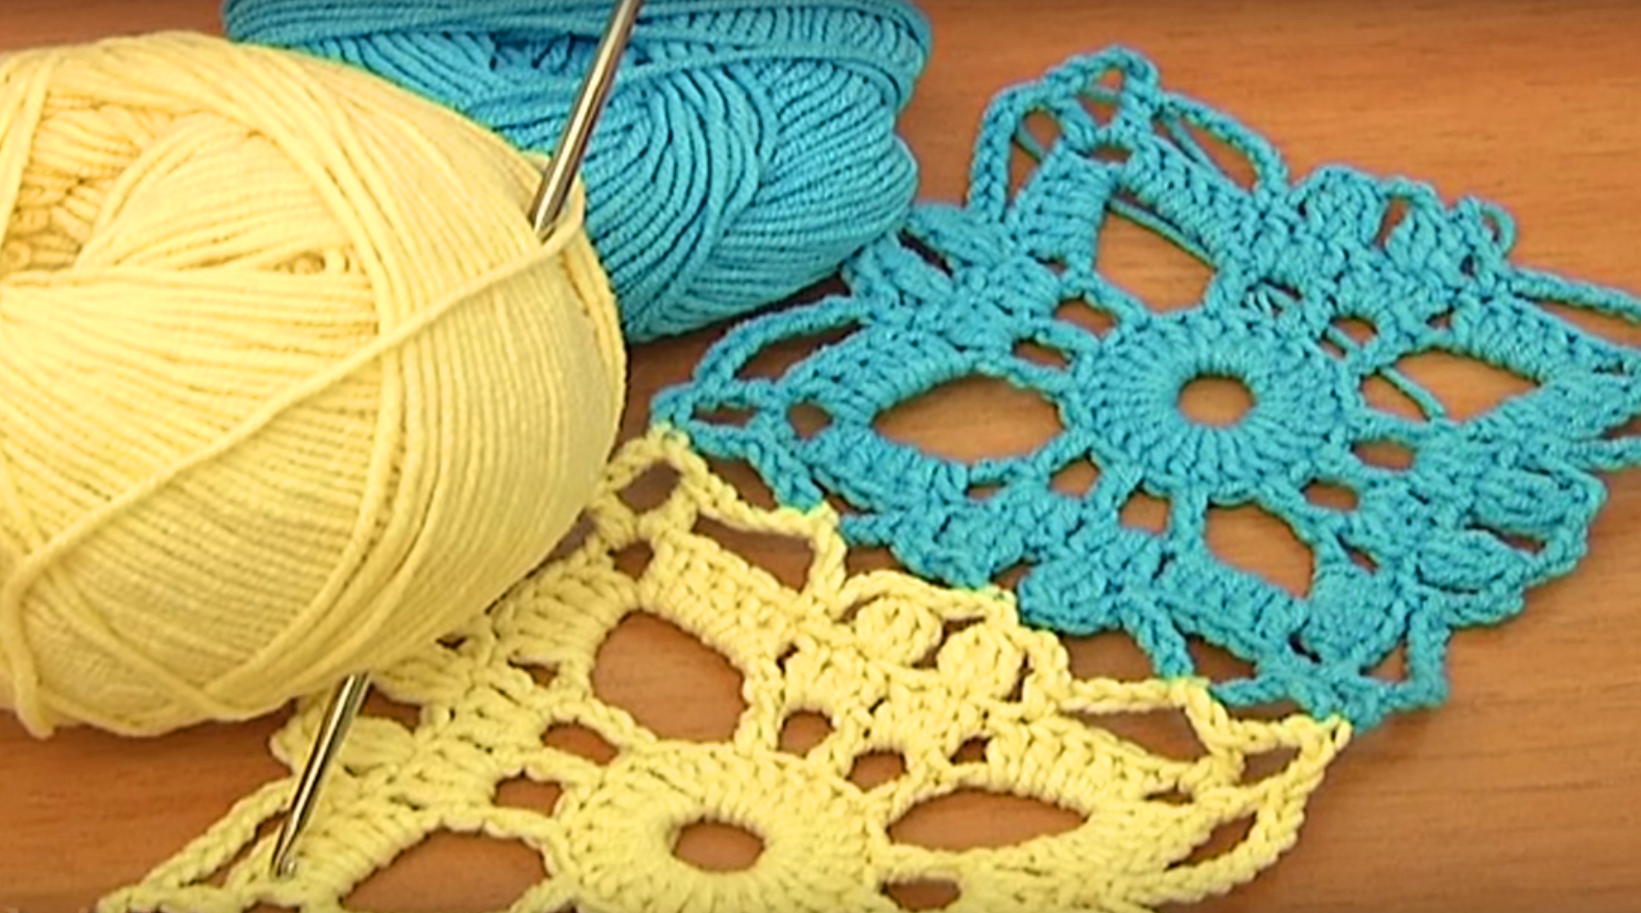 How To Make And Join Square Motifs